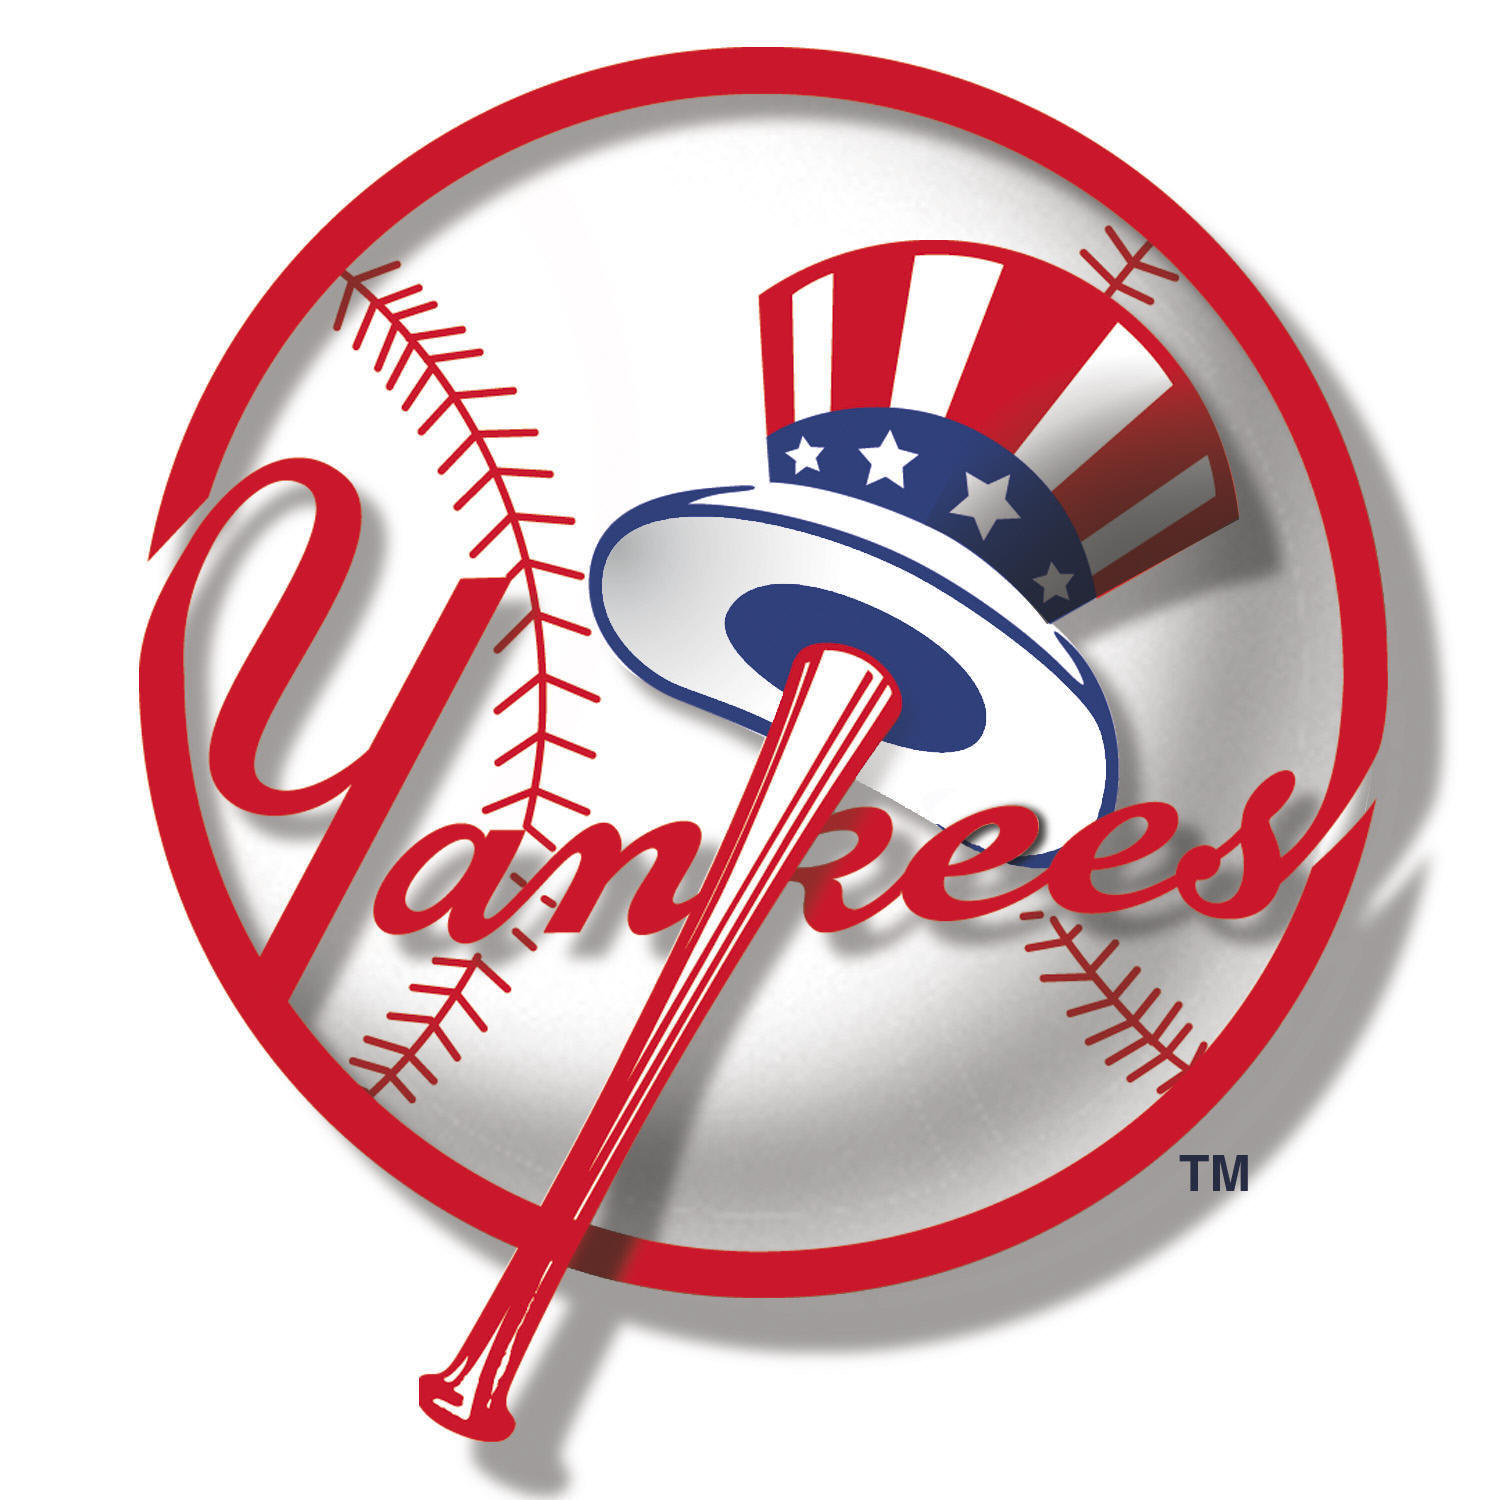 yankees-business-model1.jpg